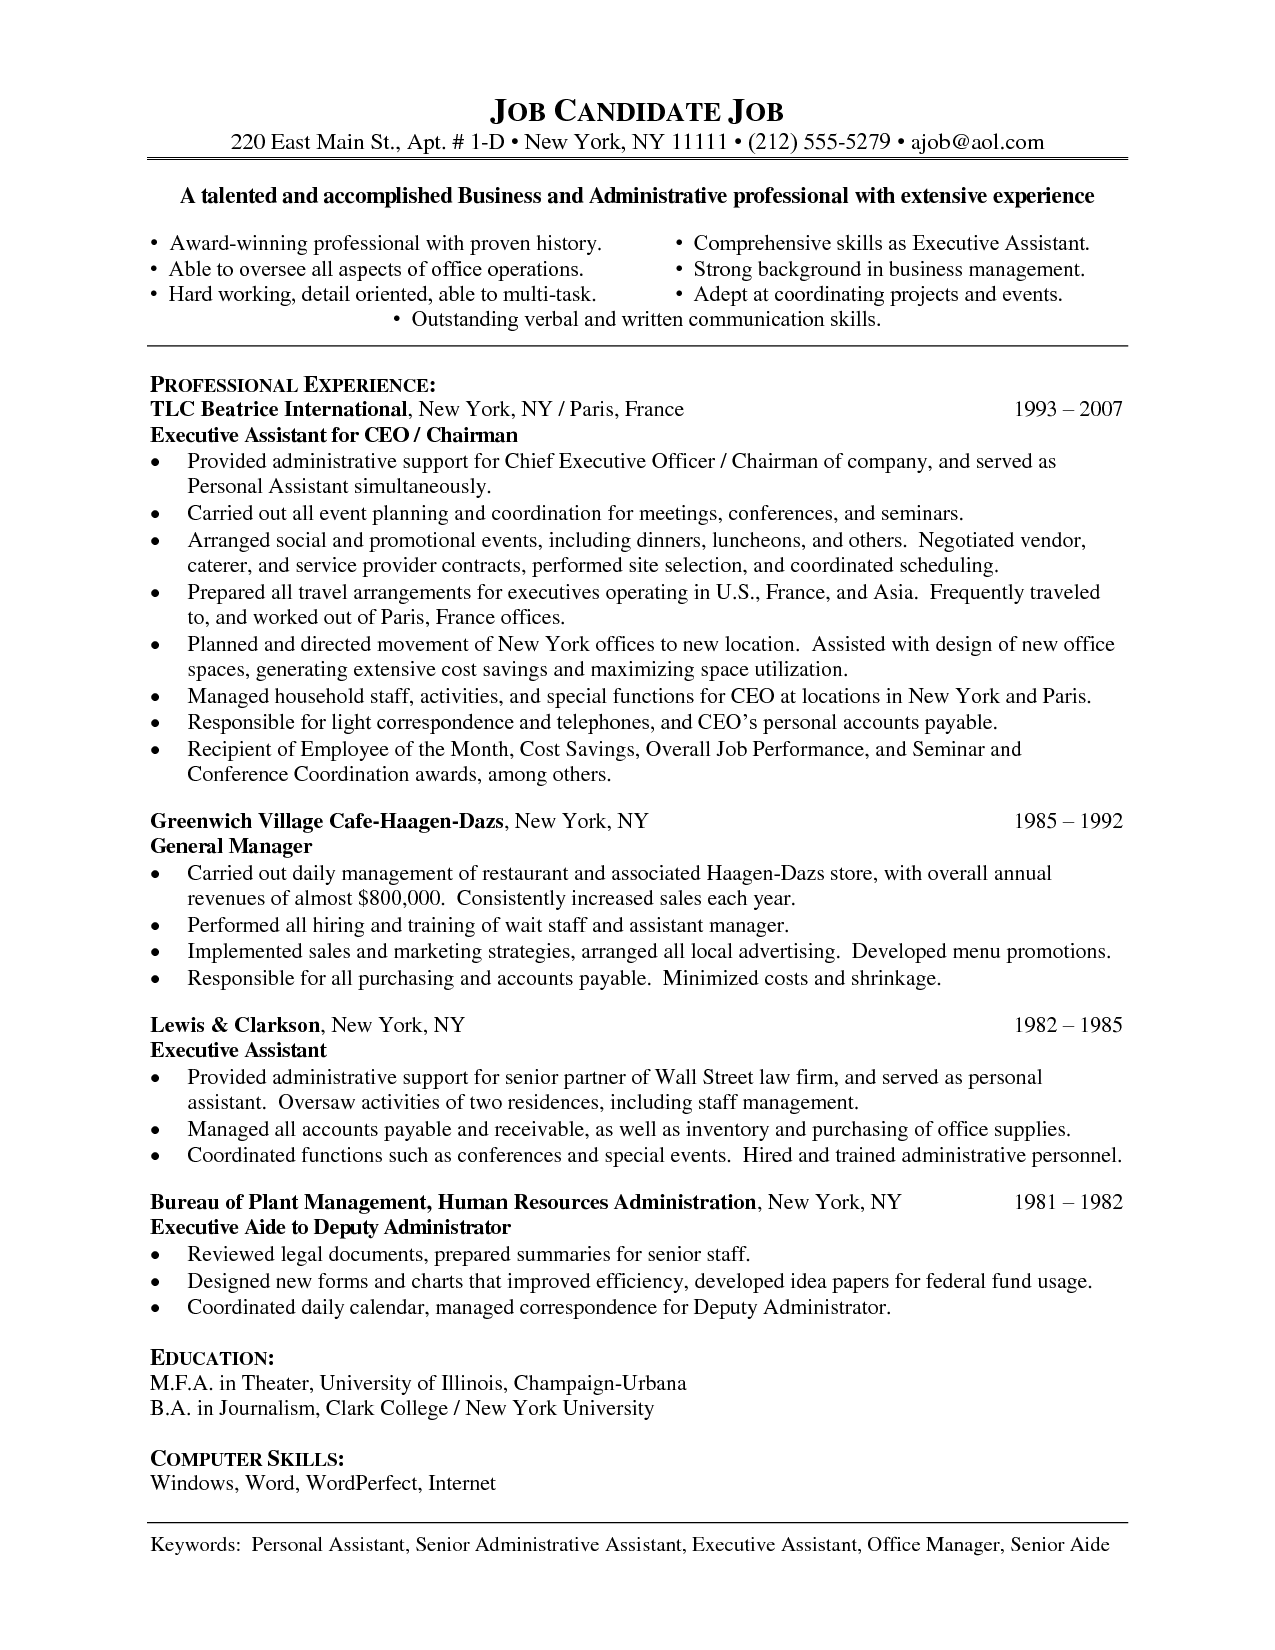 Legal Assistant Resume Captivating Administrative Functional Resume  Google Search  Administrative